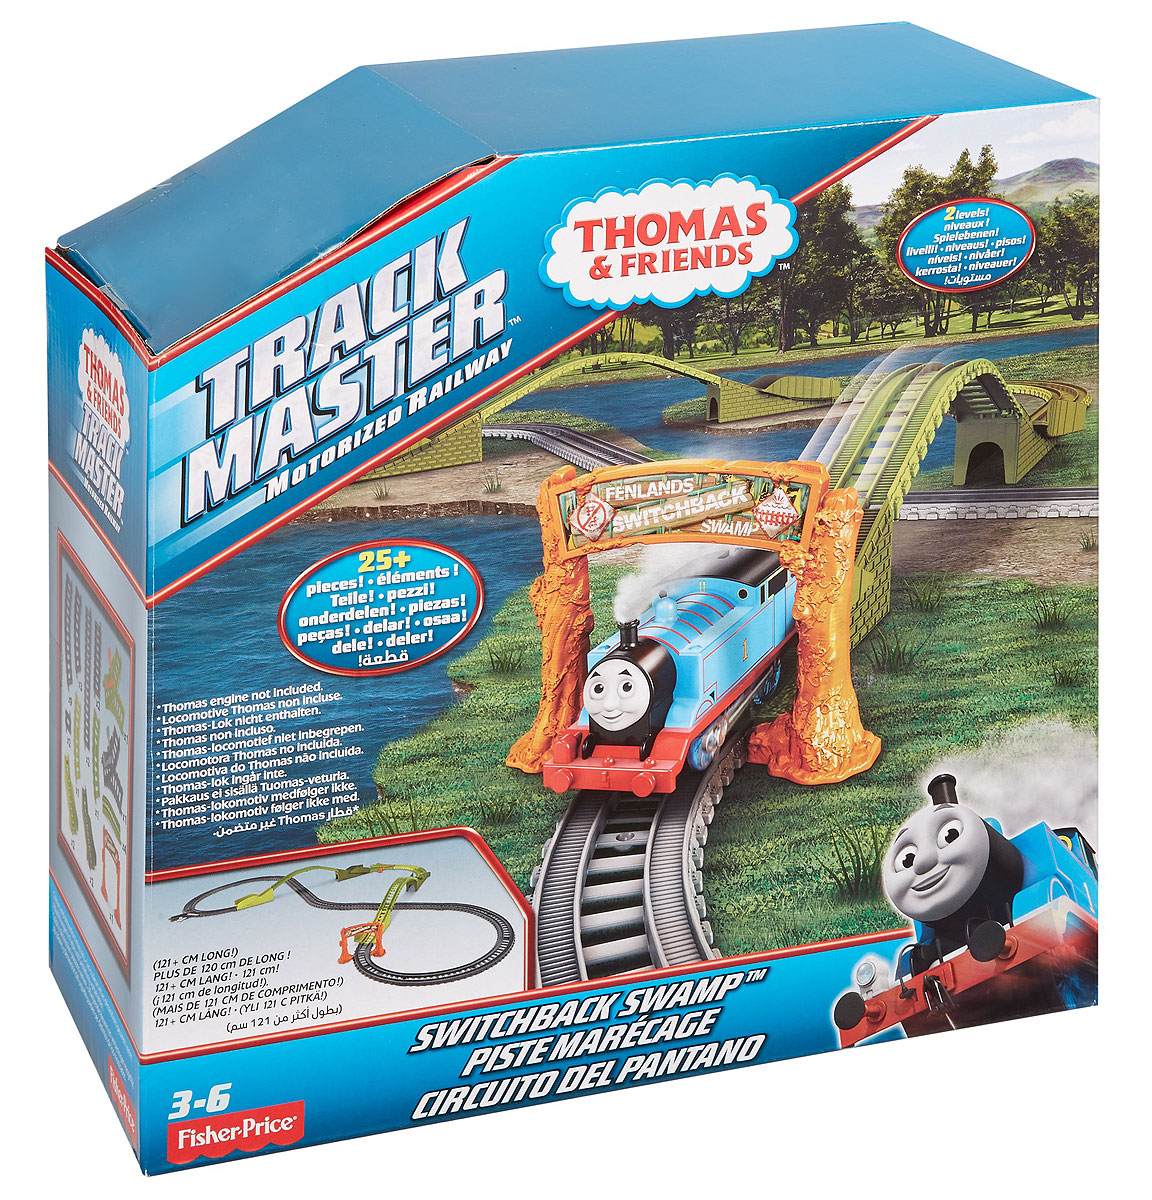 Thomas & Friends Железная дорога Switchback Swamp - Железные дороги